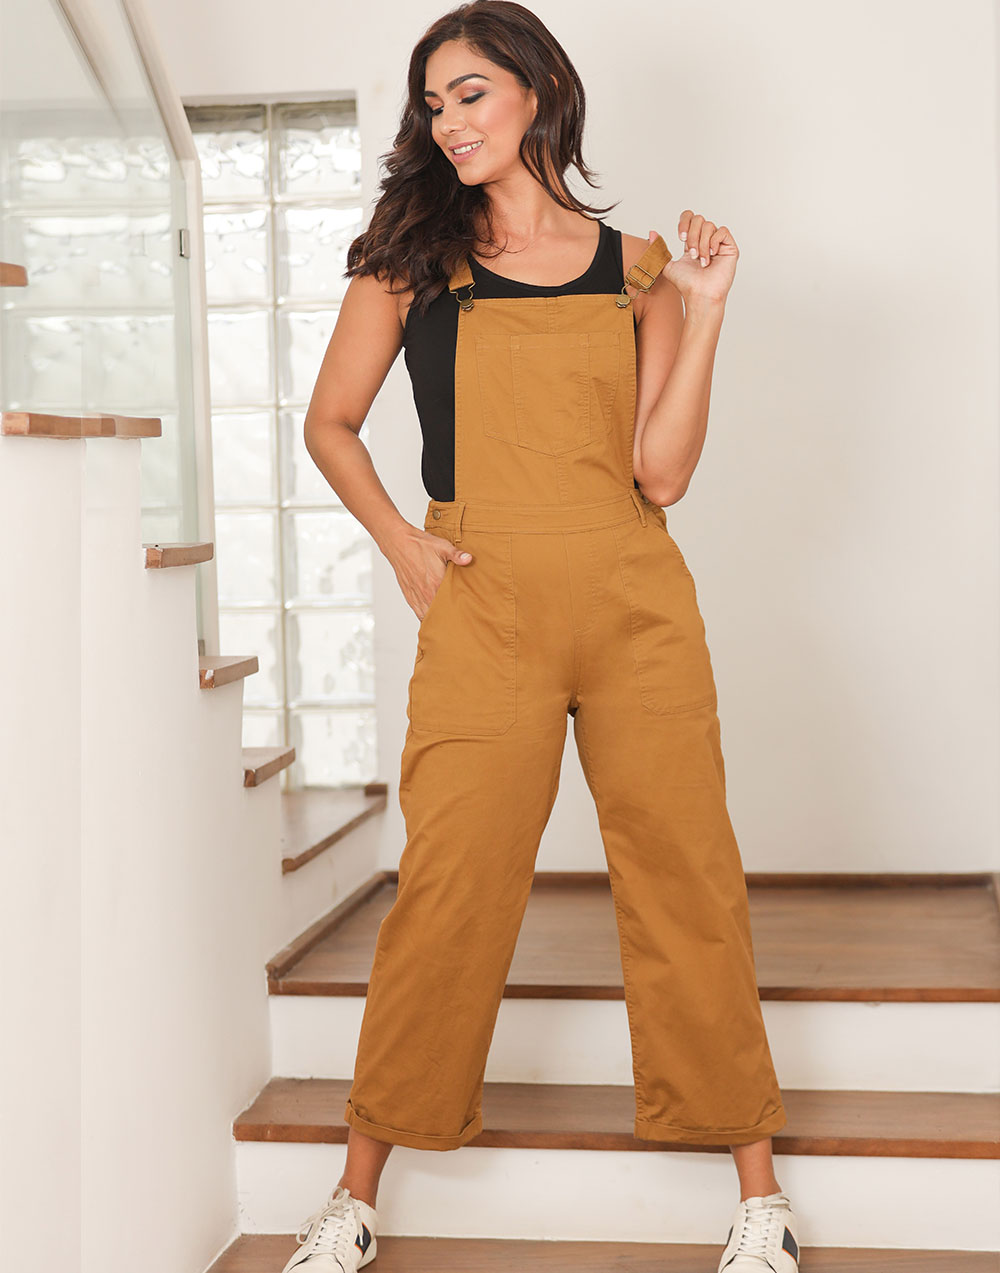 The Boyfriend Overall Jumpsuit